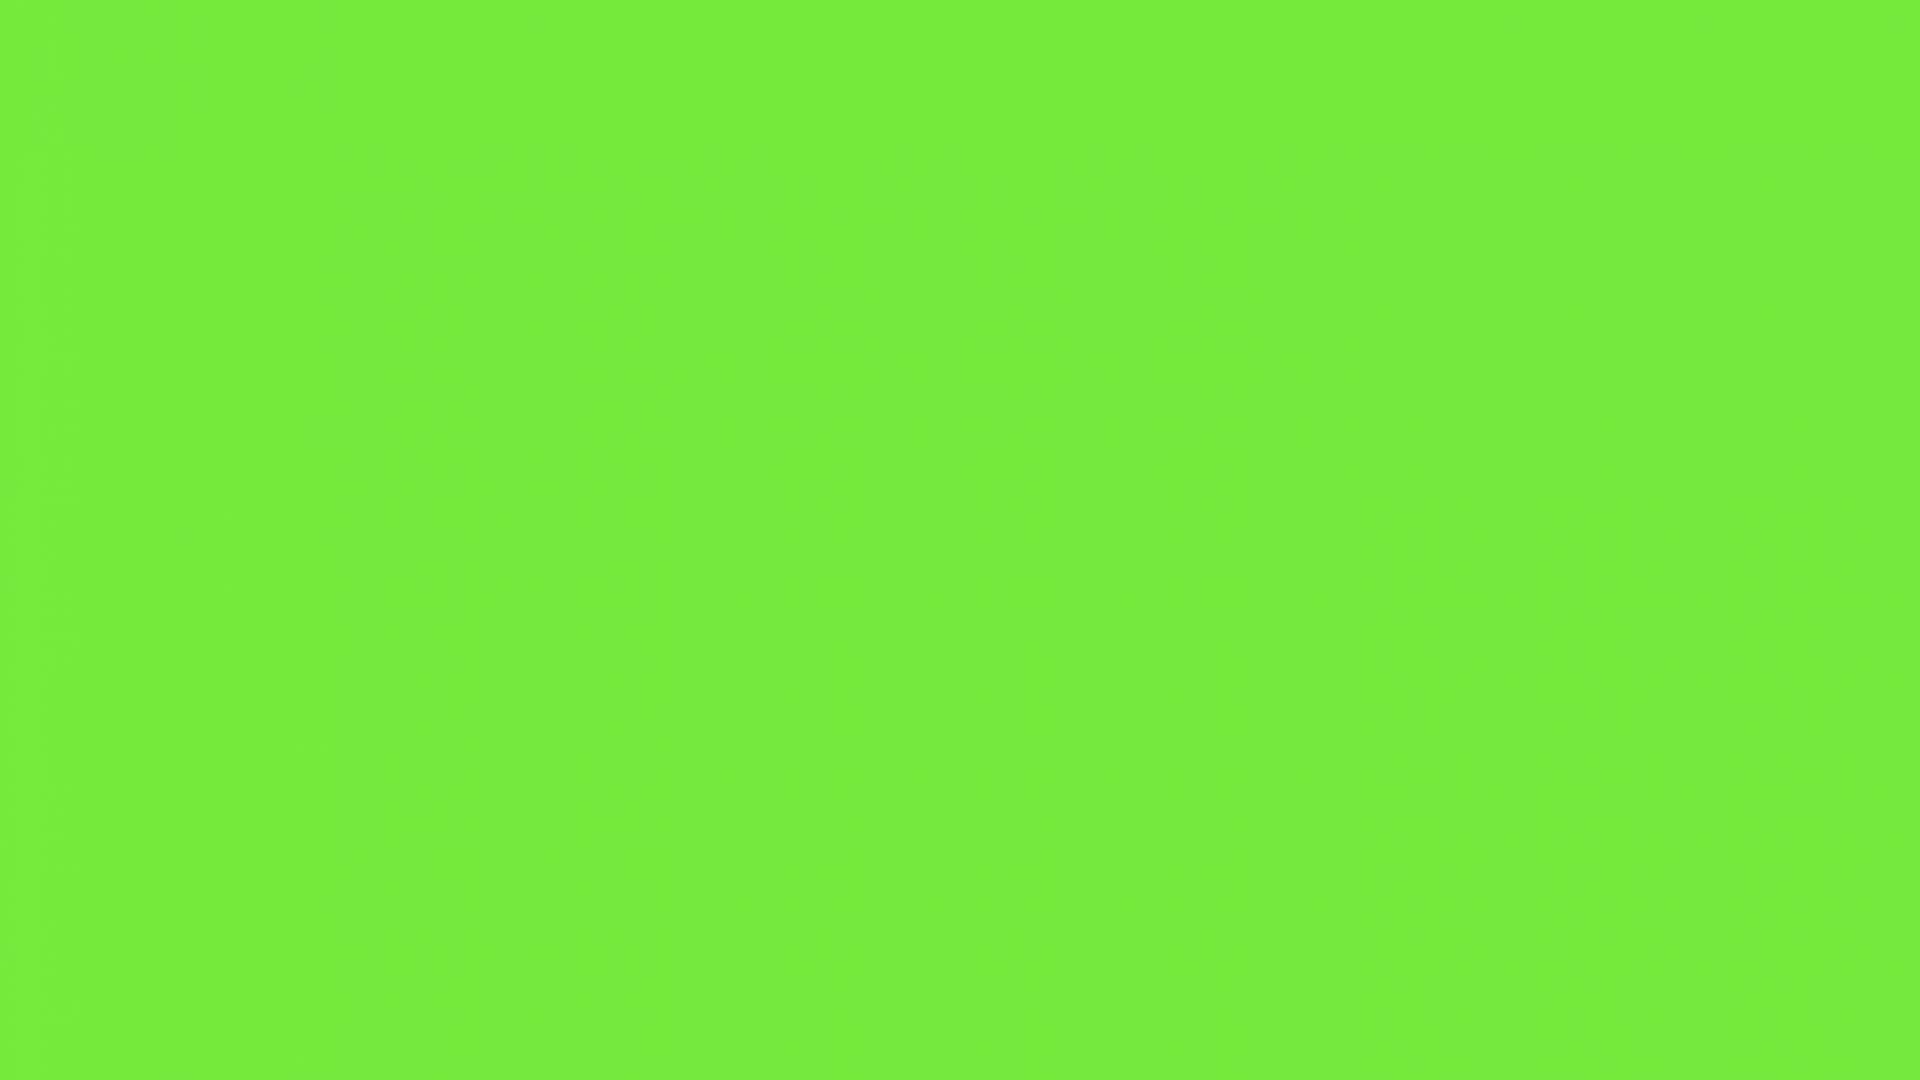 1920x1080 lime green background